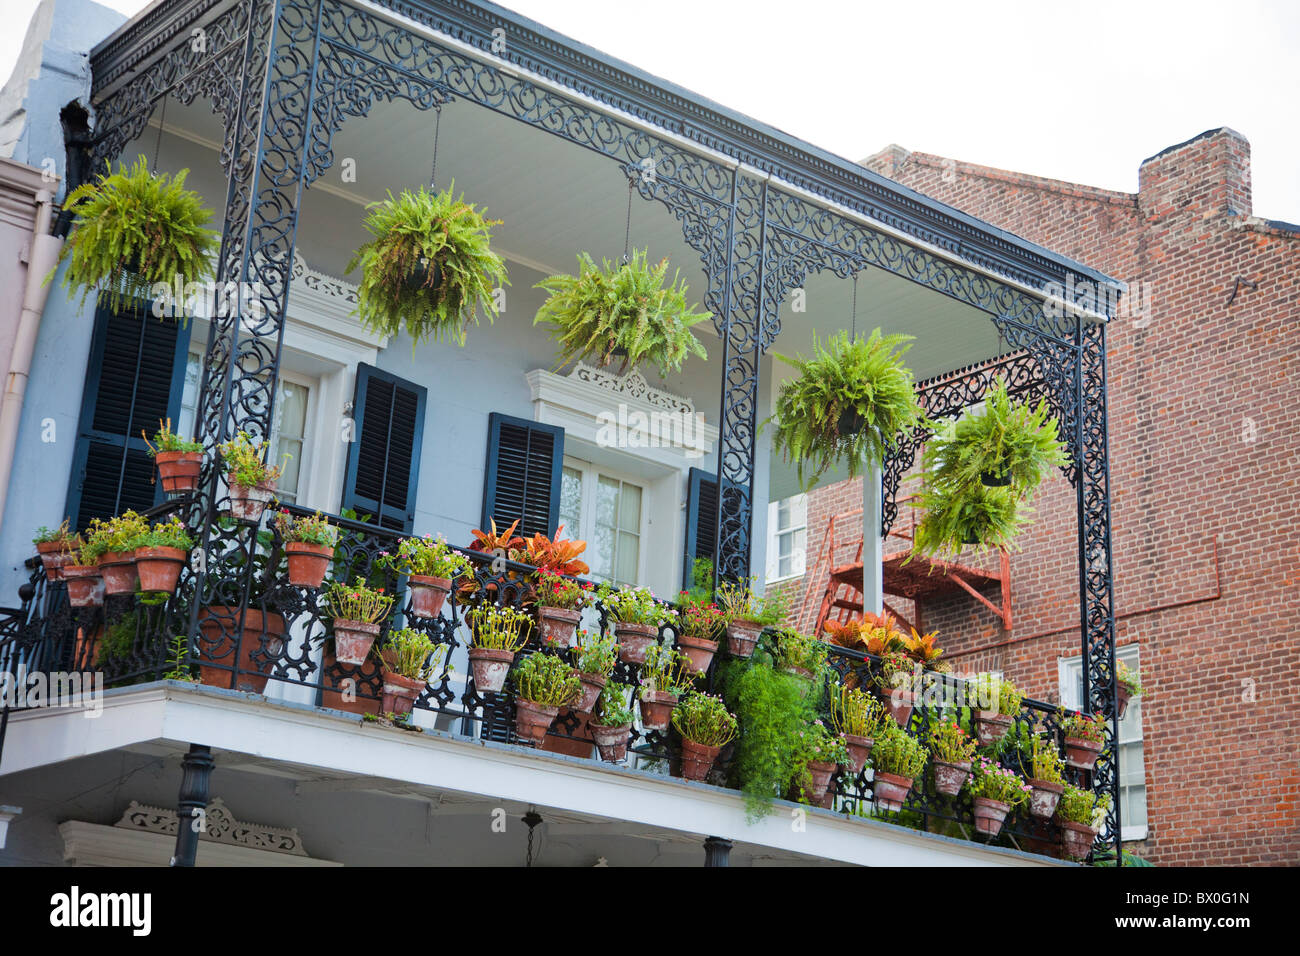 The Spanish-style architecture of the French Quarter of New